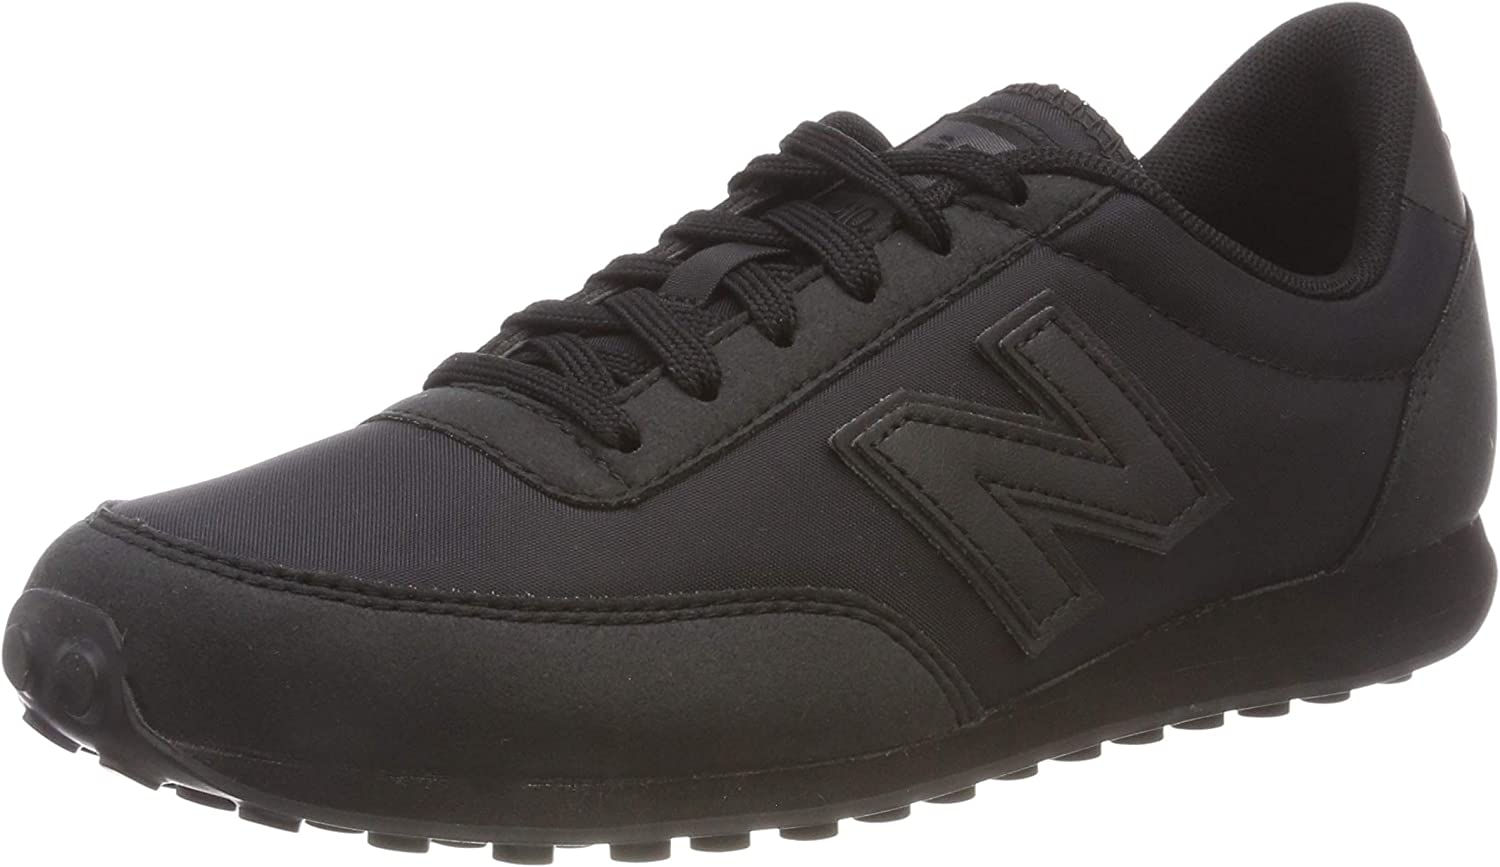 New Balance Unisex Adults' 410 Trainers